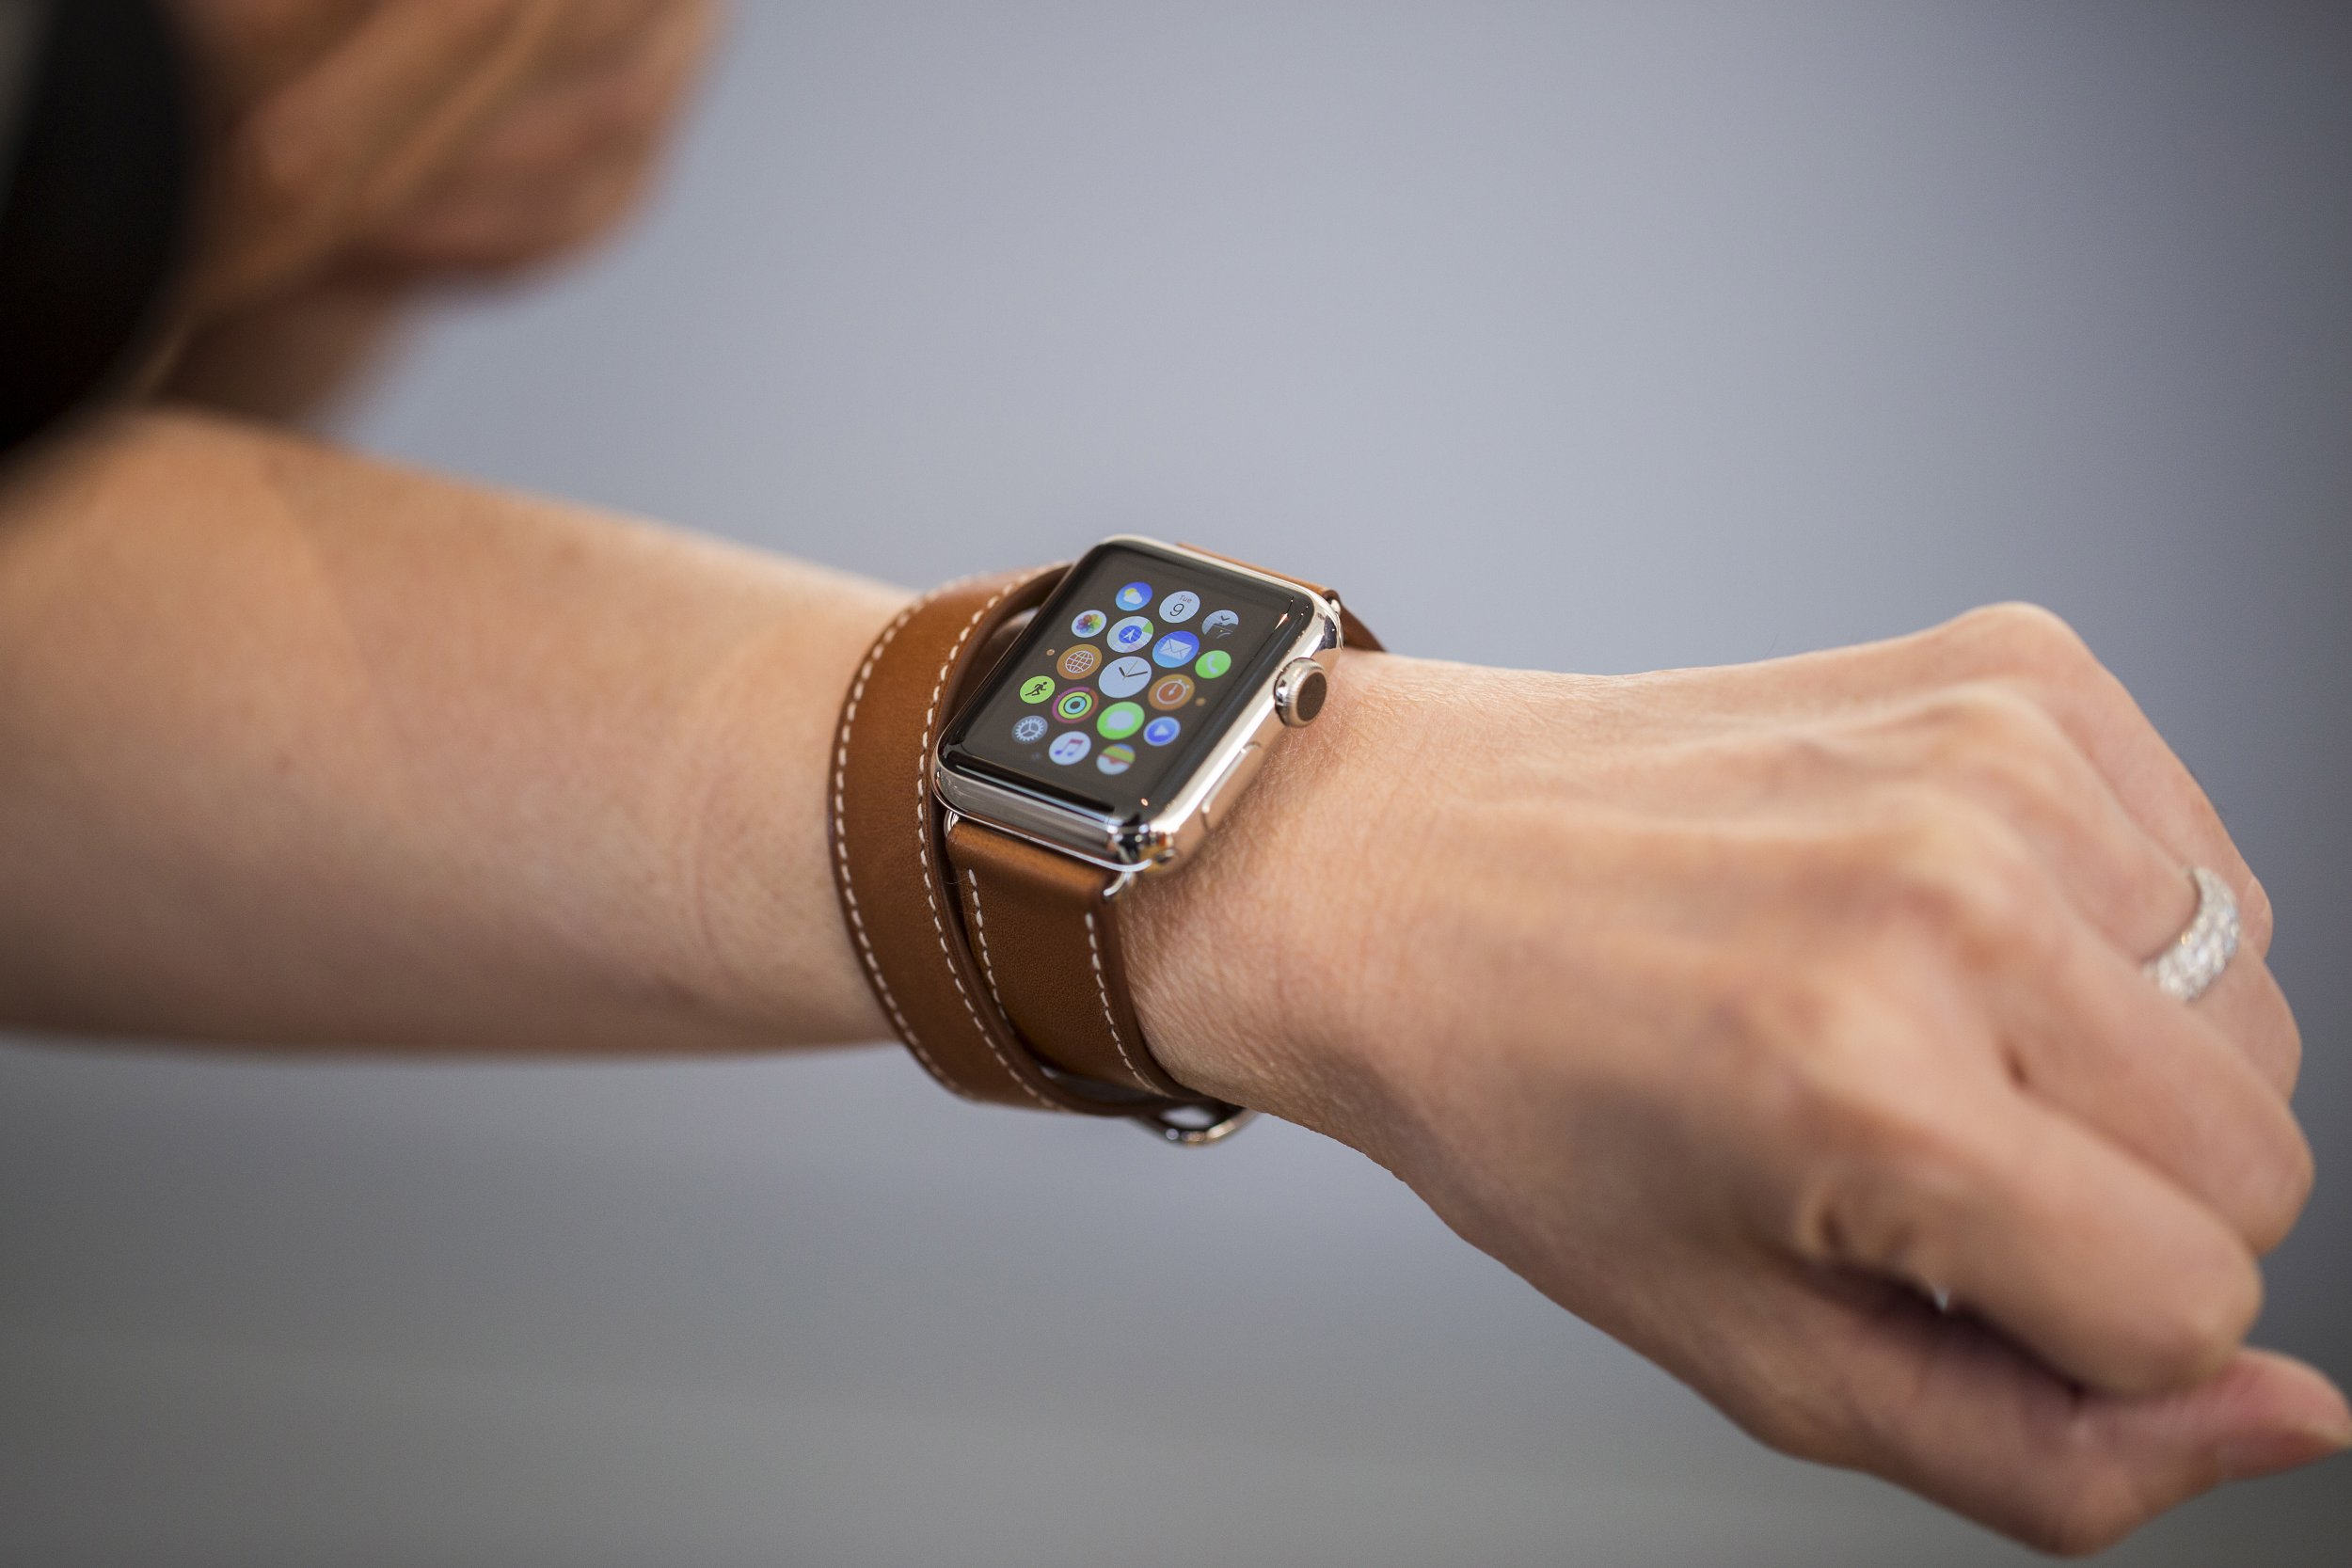 Watch marks on wrist - Apple Plans To Reveal New Apple Watch Next March